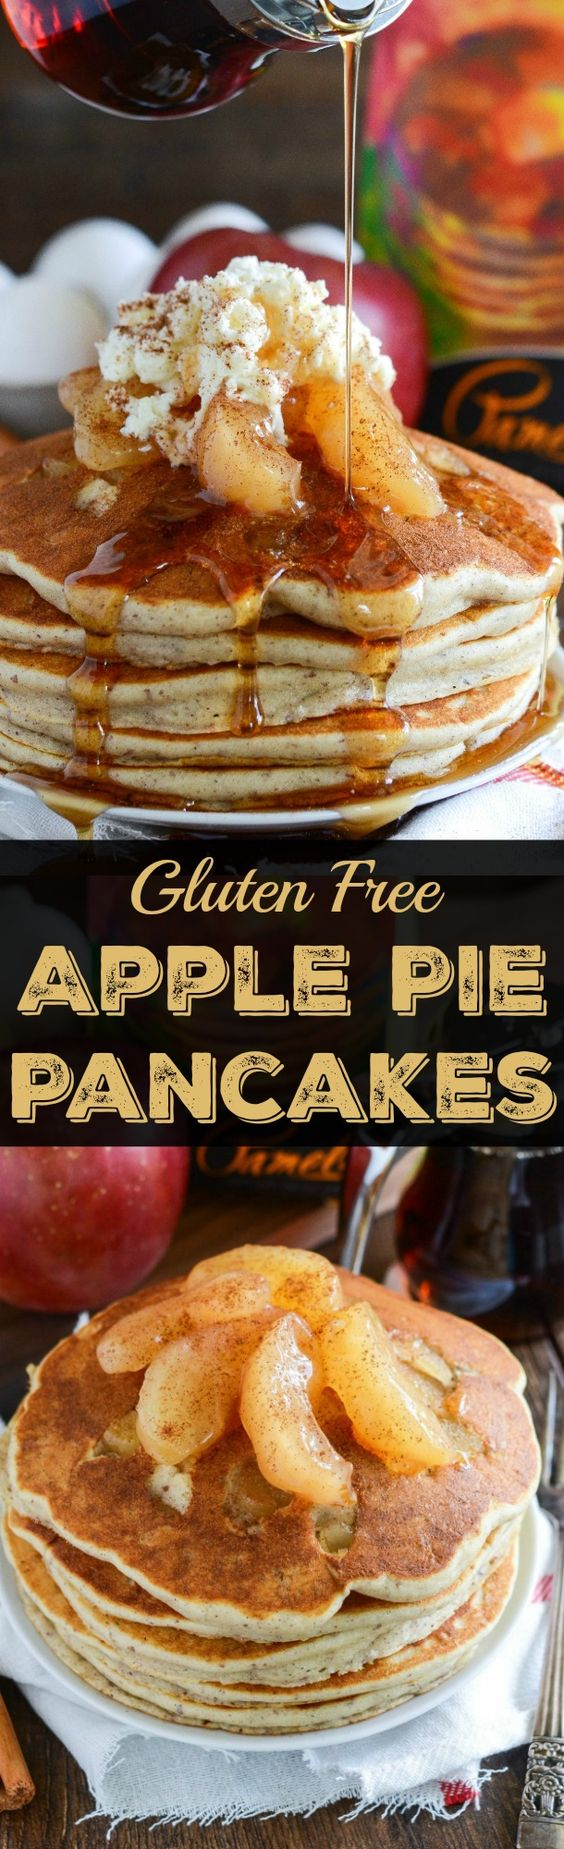 Gluten-Free Apple Pie Pancakes Recipe via The Novice Chef - with warm bites of cinnamon apples cooked inside!